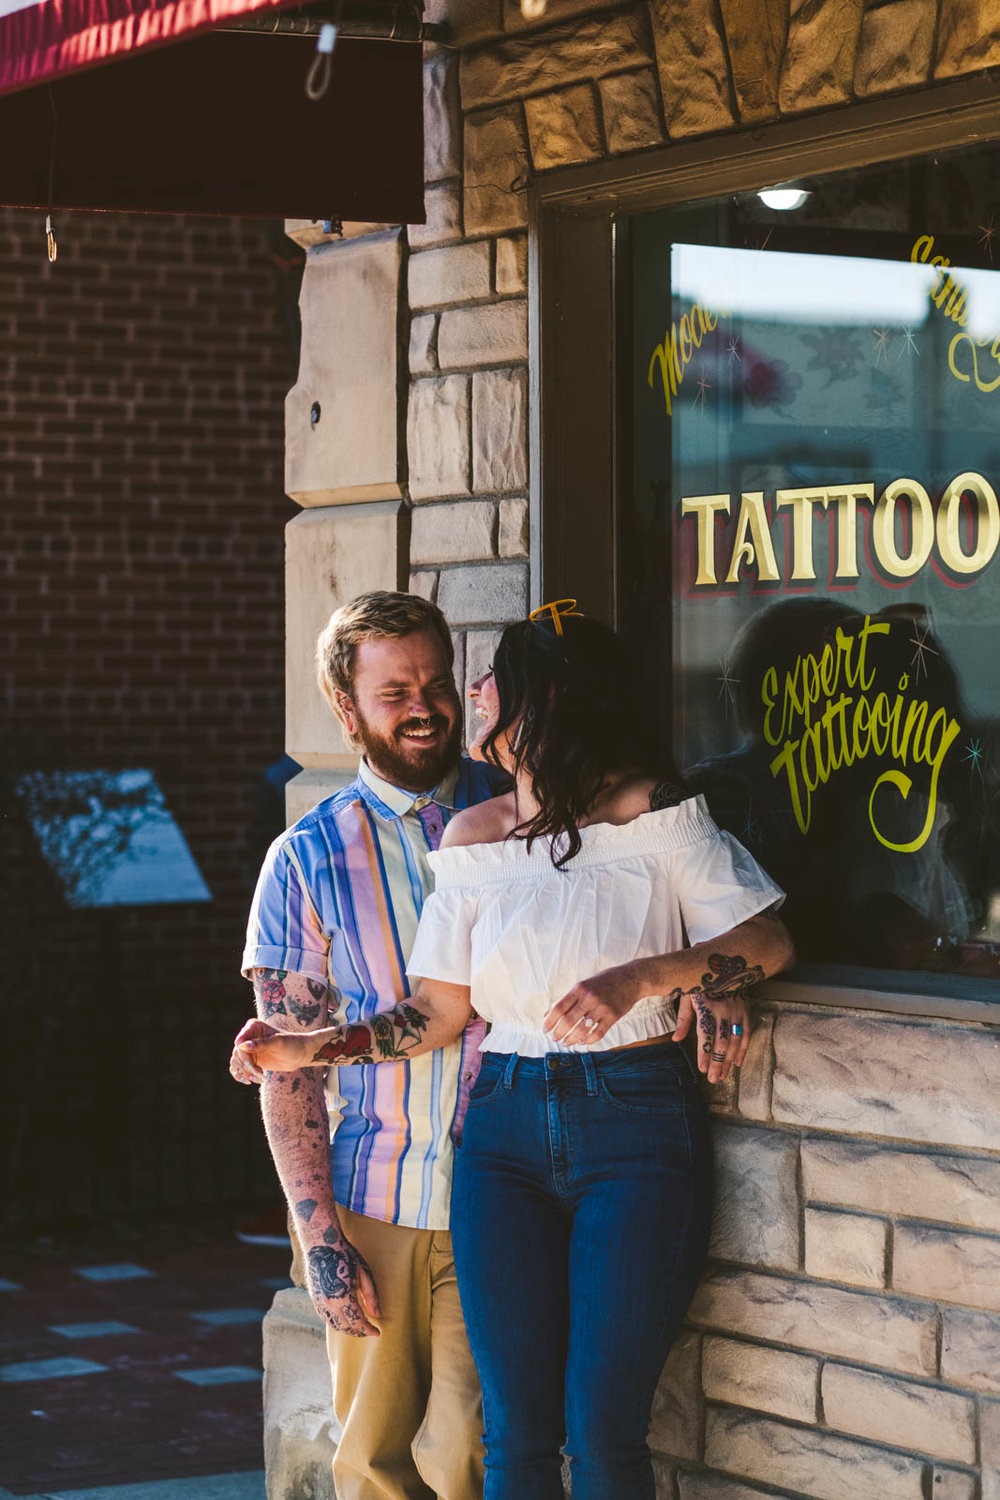 Engaged Couple shoots at Tattoo Shop